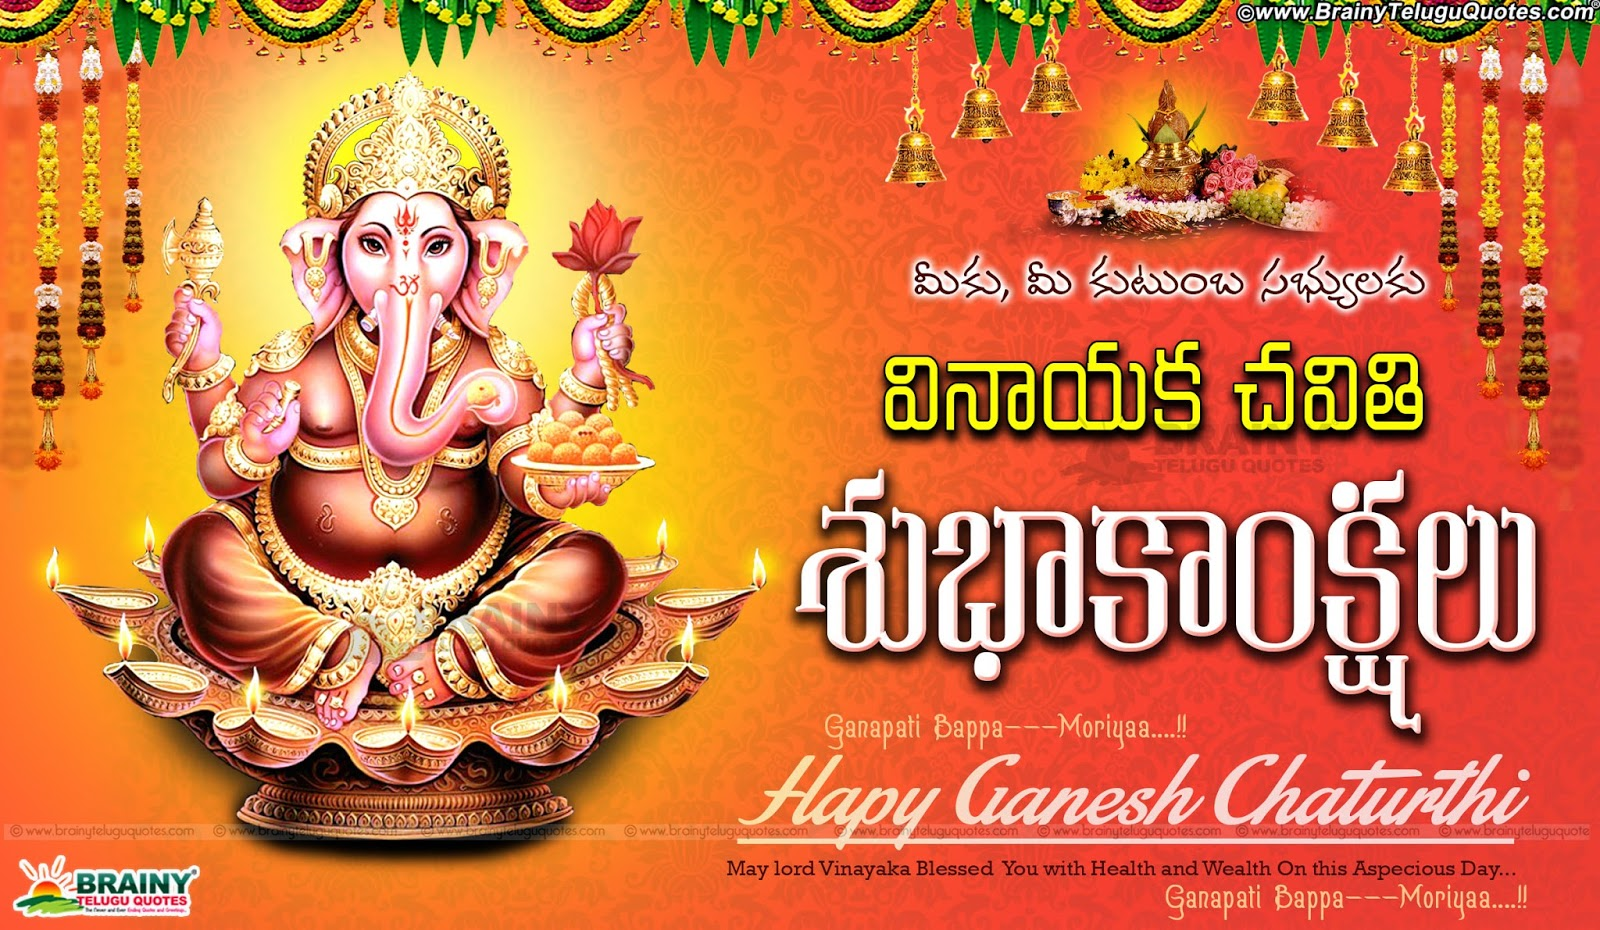 Happy ganesh chaturthi 2016 wishes quotes greetings in telugu happy ganesh chaturthi 2016 wishes quotes greetings in telugu language m4hsunfo